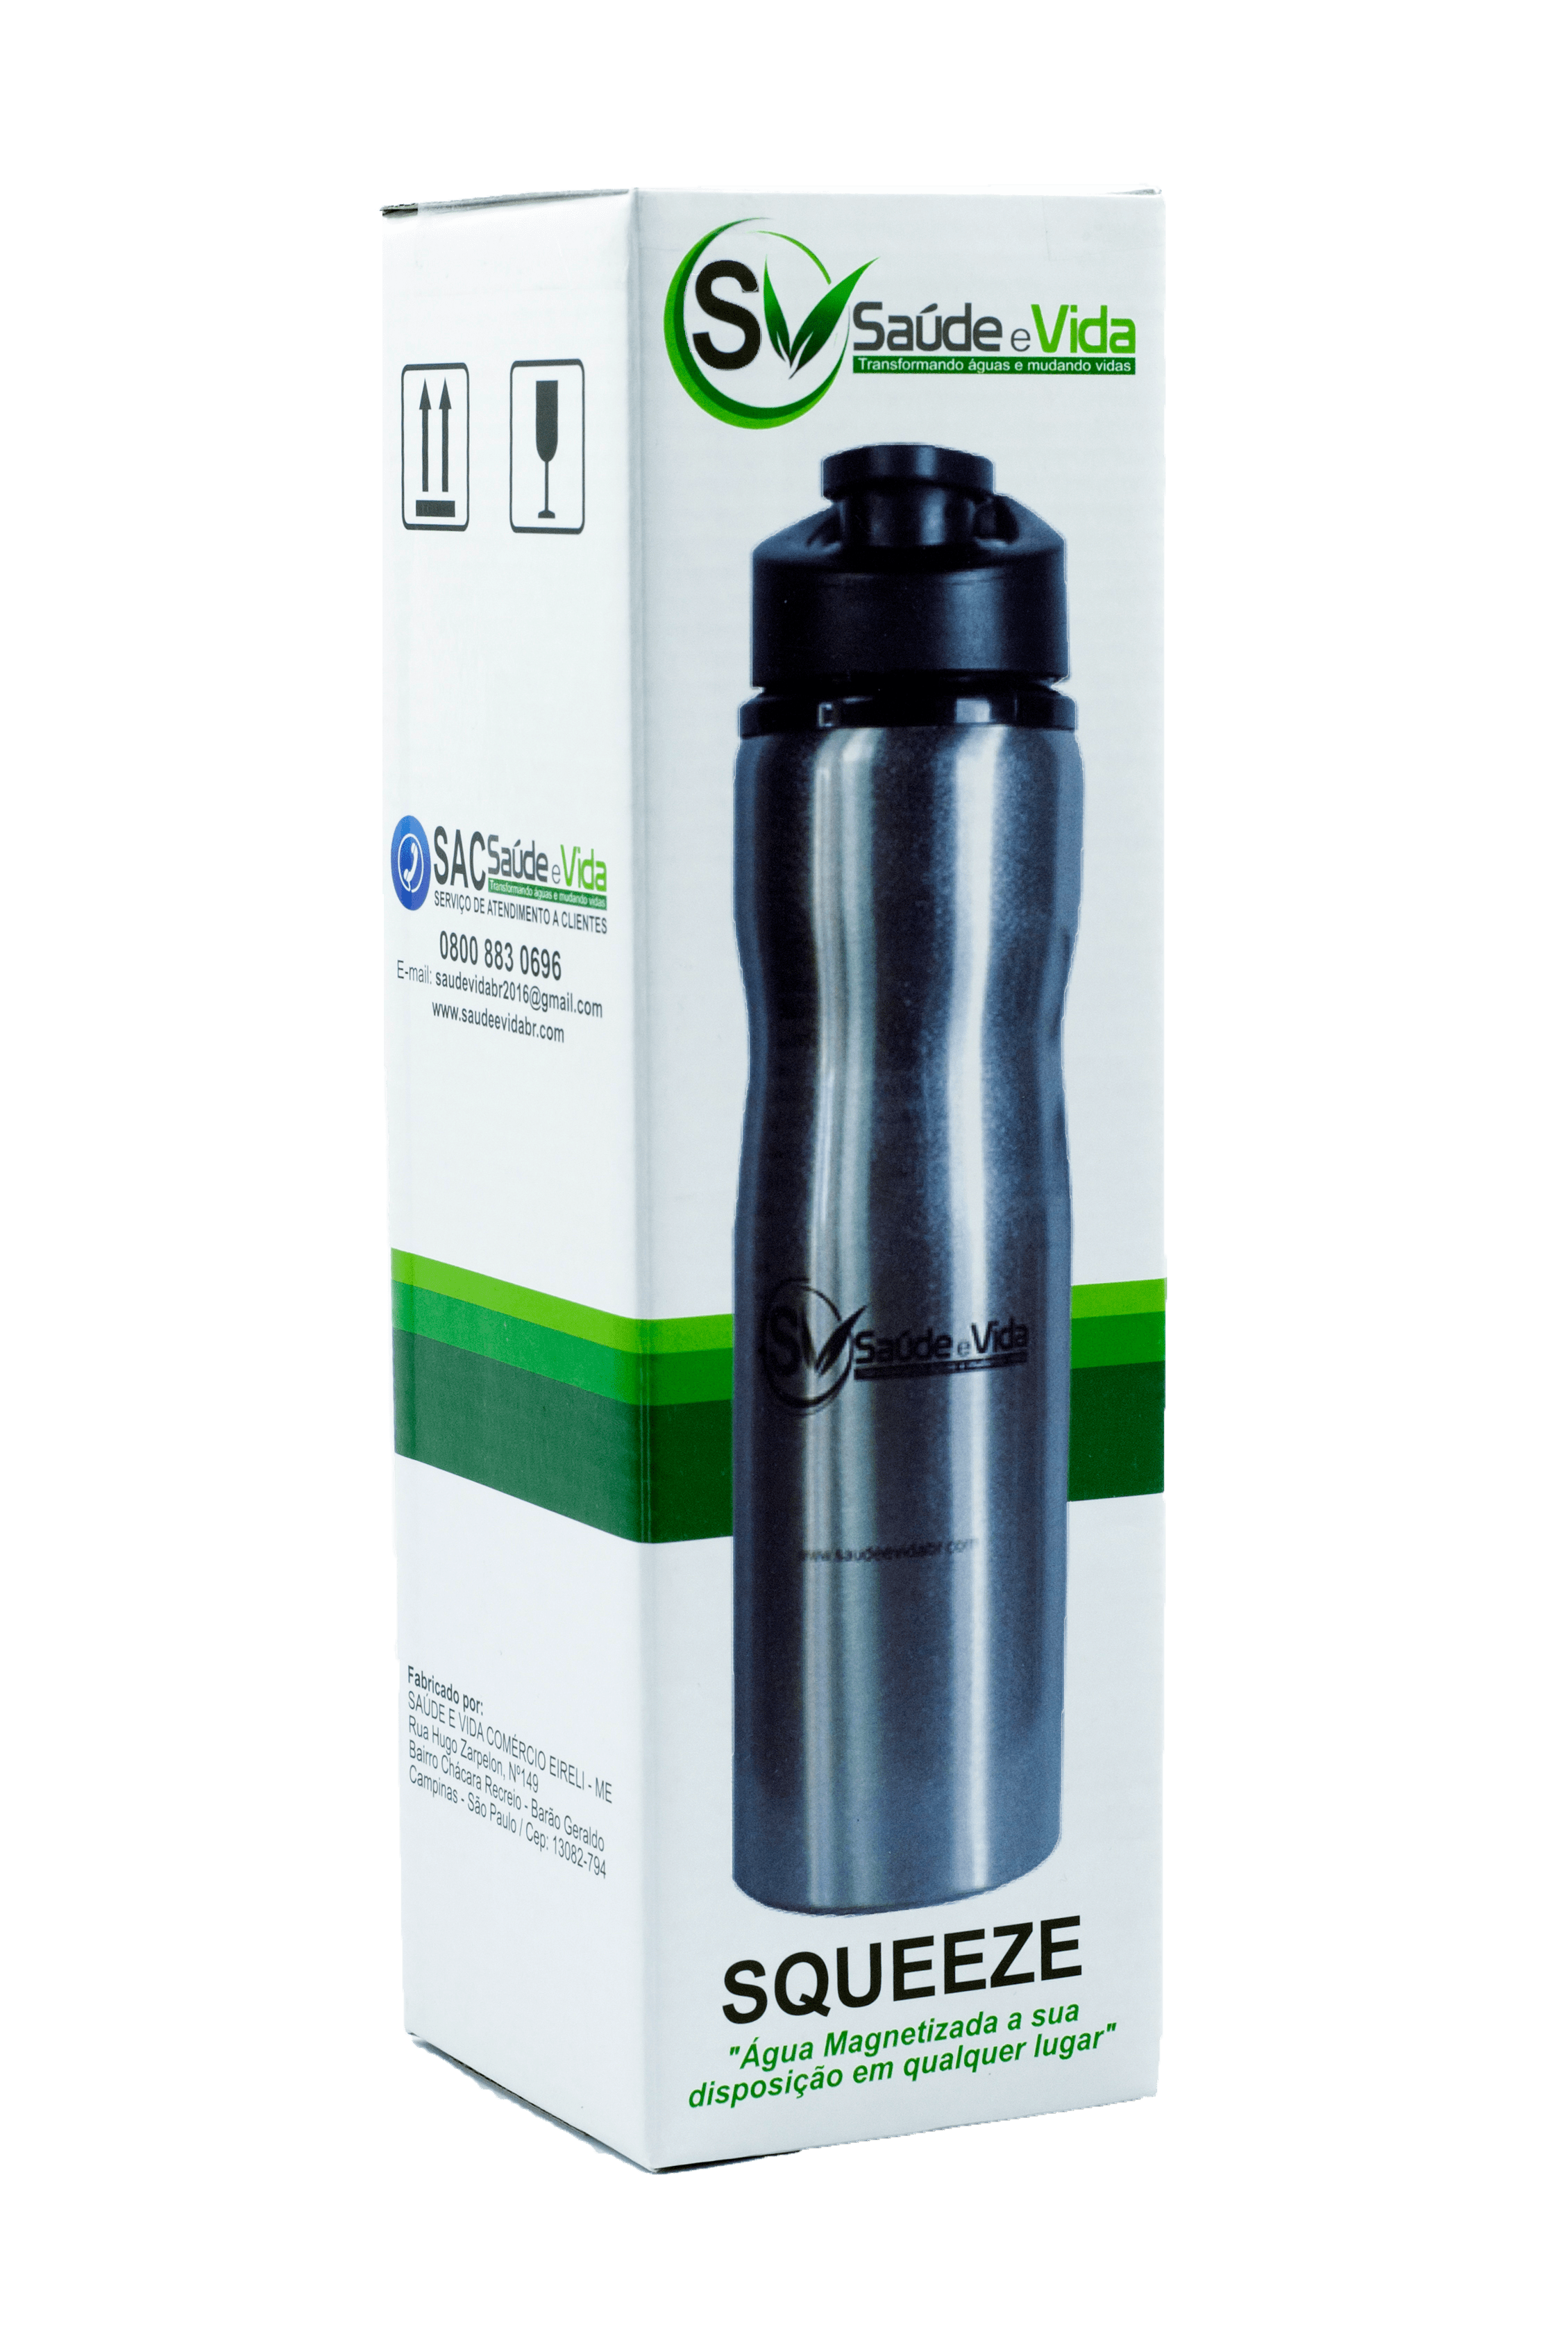 Squeezer de 700 ML